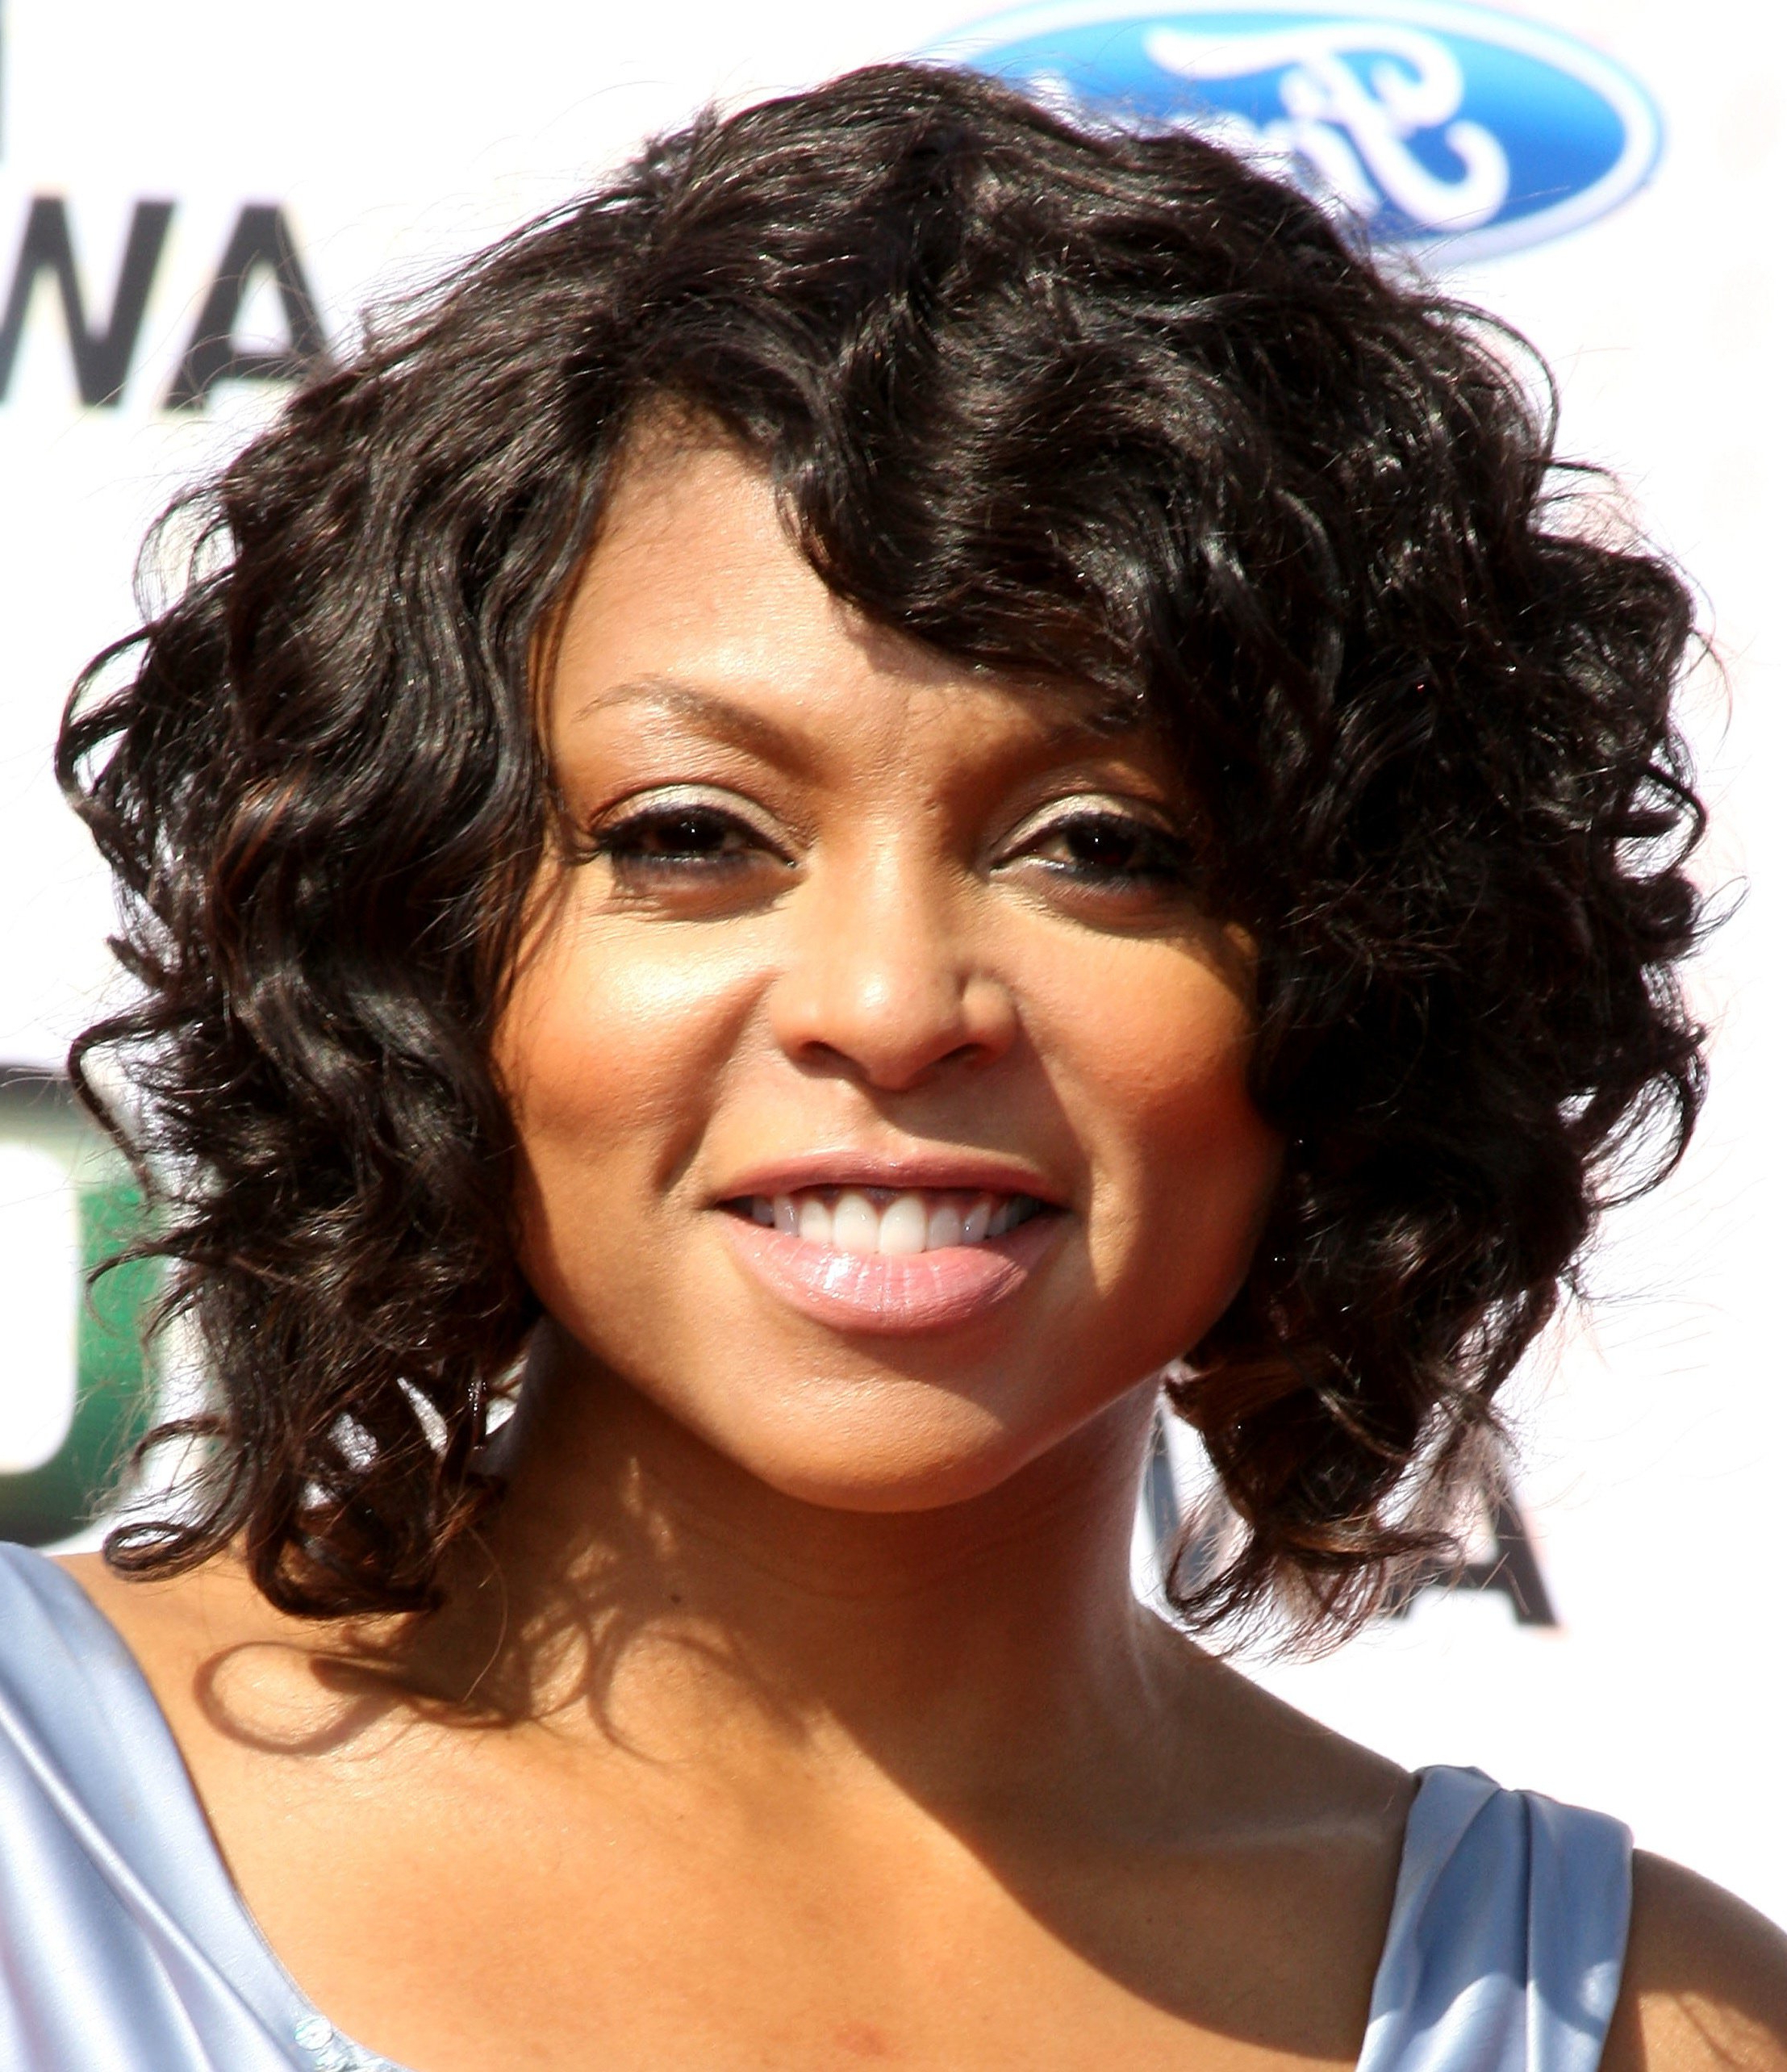 Top 25 Short Curly Hairstyles For Black Women Intended For Curly Short Hairstyles For Black Women (View 13 of 25)